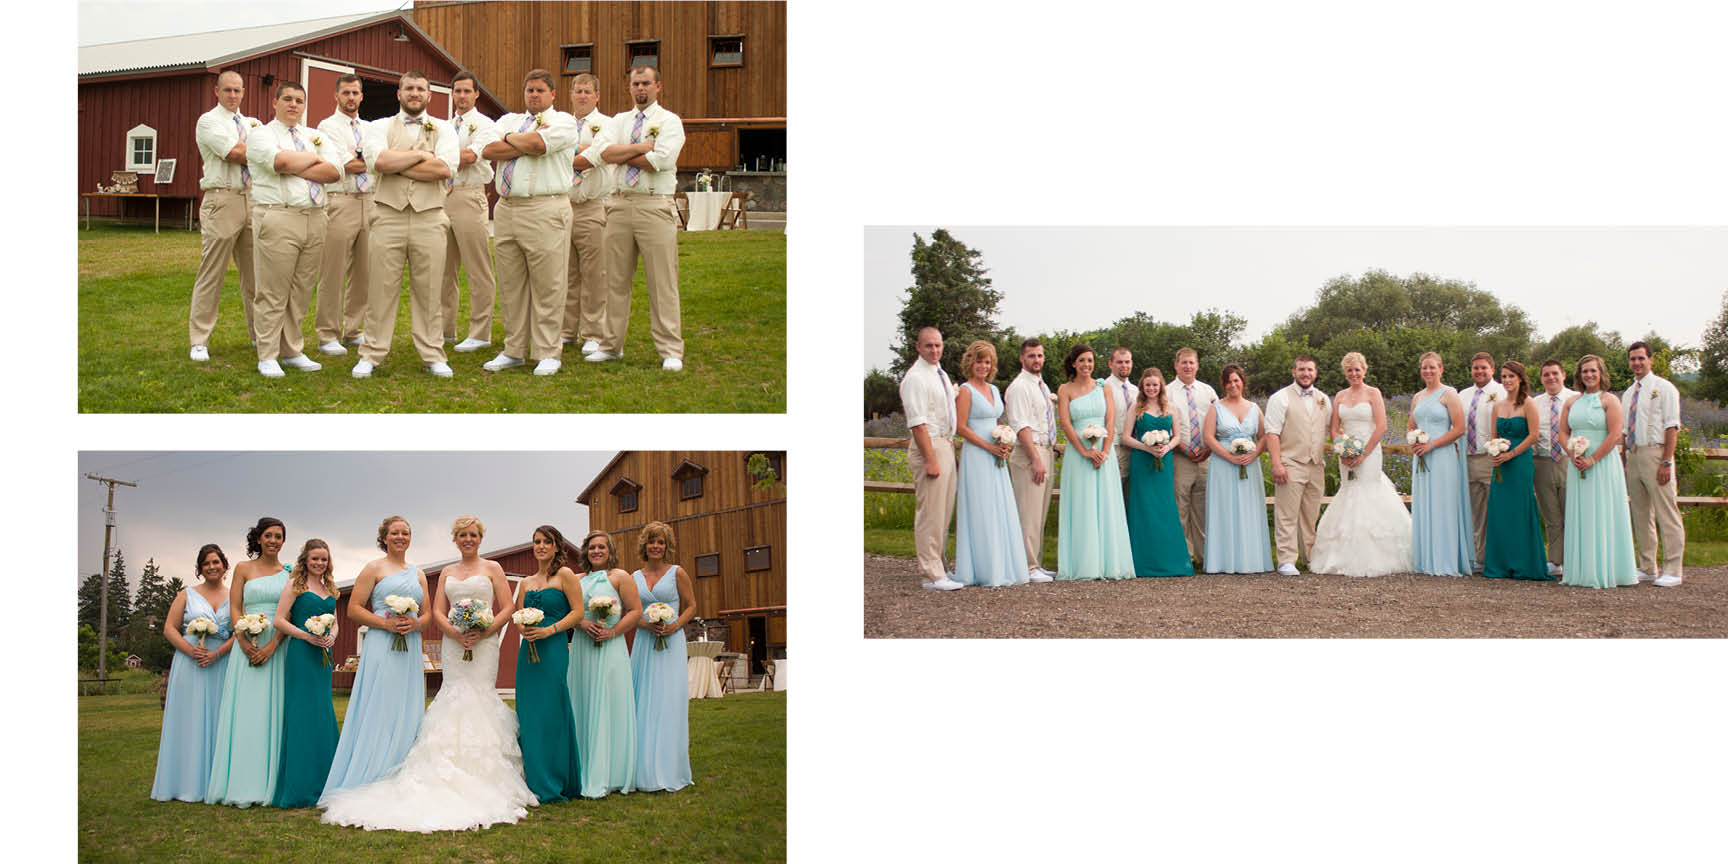 The bridal party poses in front of the barn at Misty Farms.